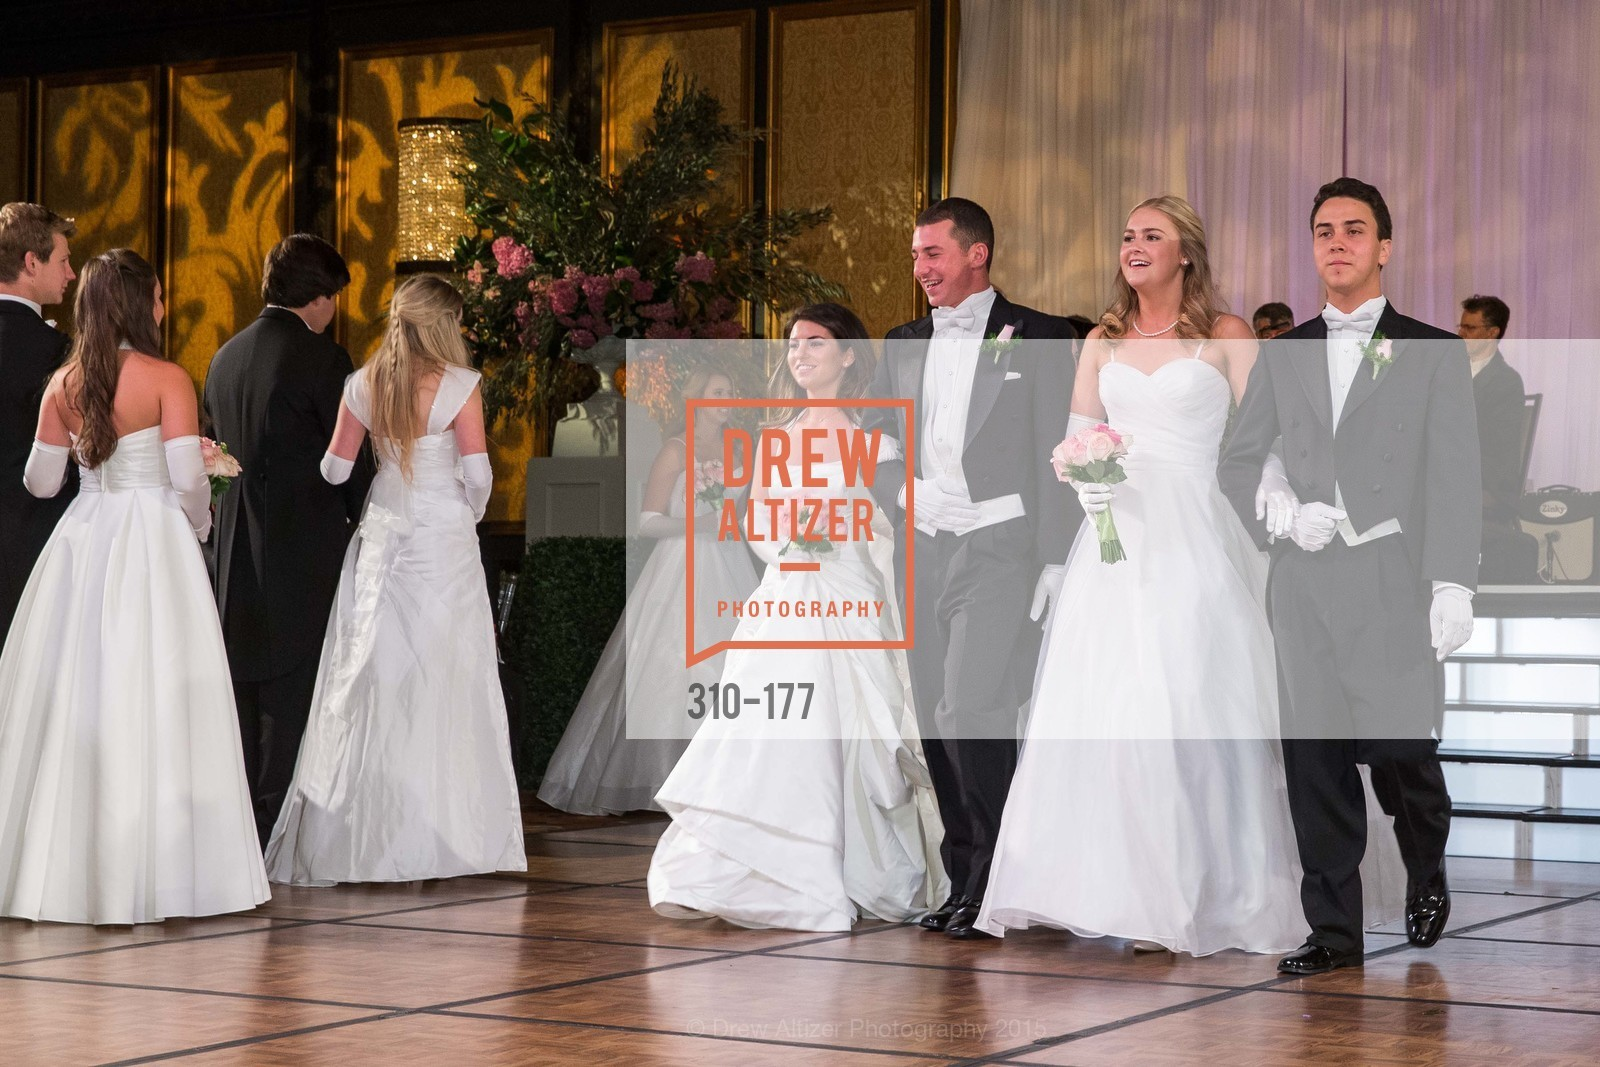 Paige Silverman, Parker Wyatt Silverman, Sarah Scannell, Kai Otto Fukami Vogel, The 2015 San Francisco Debutante Ball, The Westin St. Francis San Francisco Union Square. 335 Powell St, June 20th, 2015,Drew Altizer, Drew Altizer Photography, full-service agency, private events, San Francisco photographer, photographer california